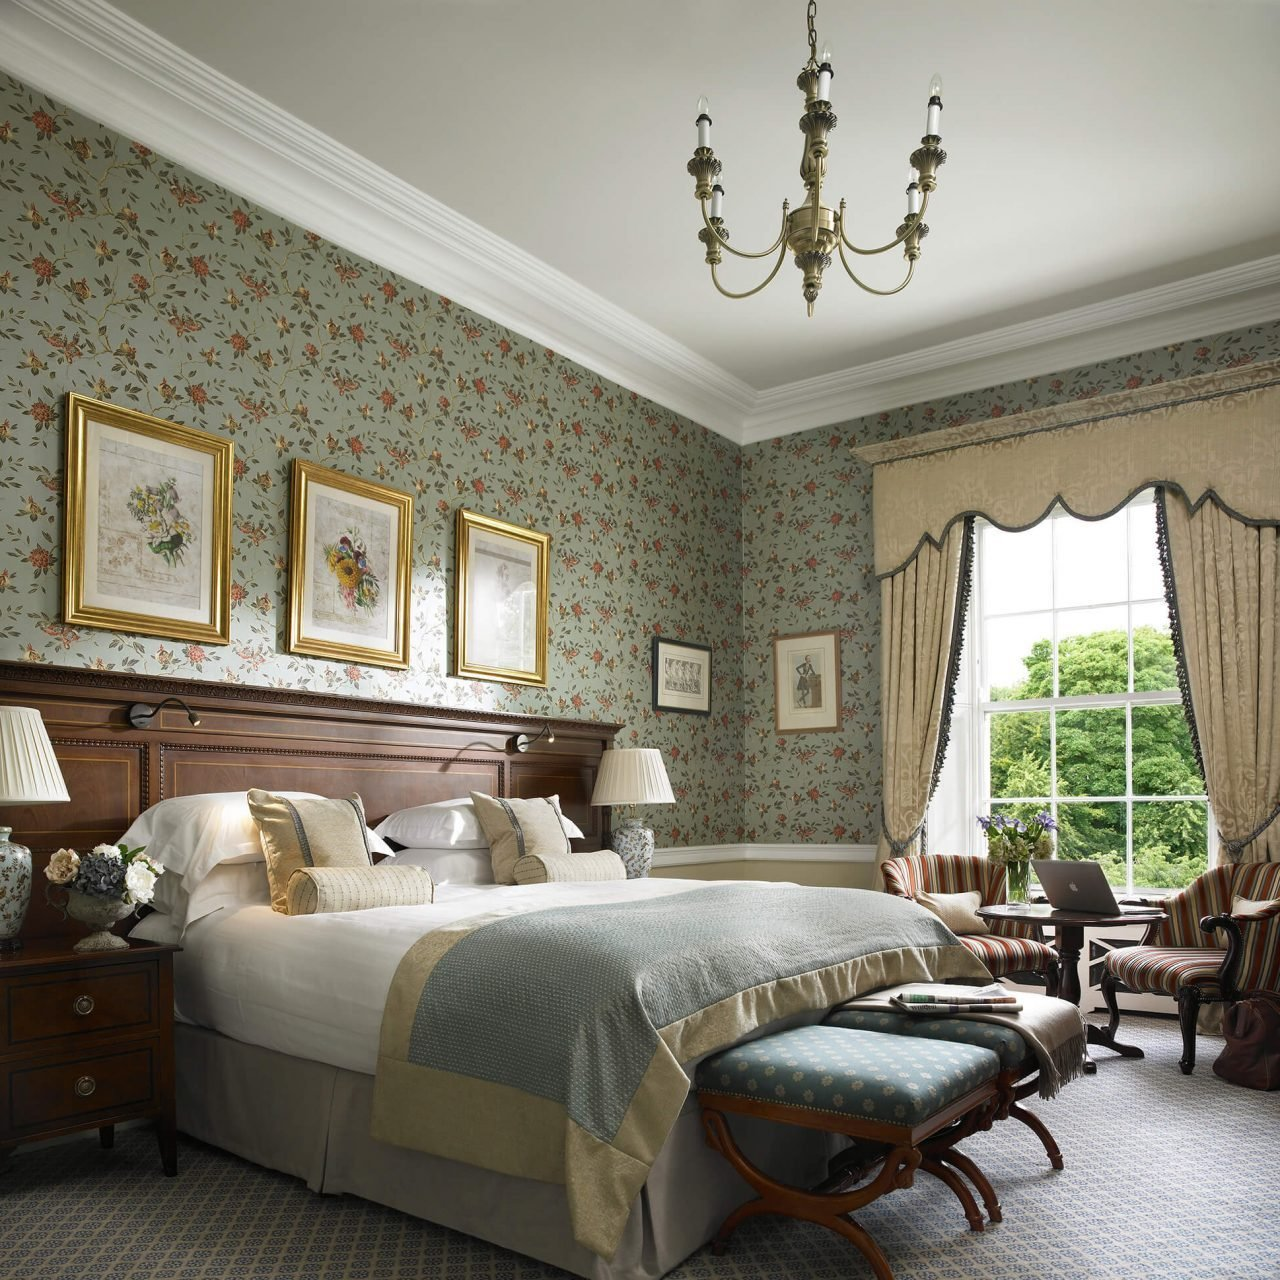 Best Luxury 5 Star Accommodation Kildare Luxury Hotel Suites With Pictures